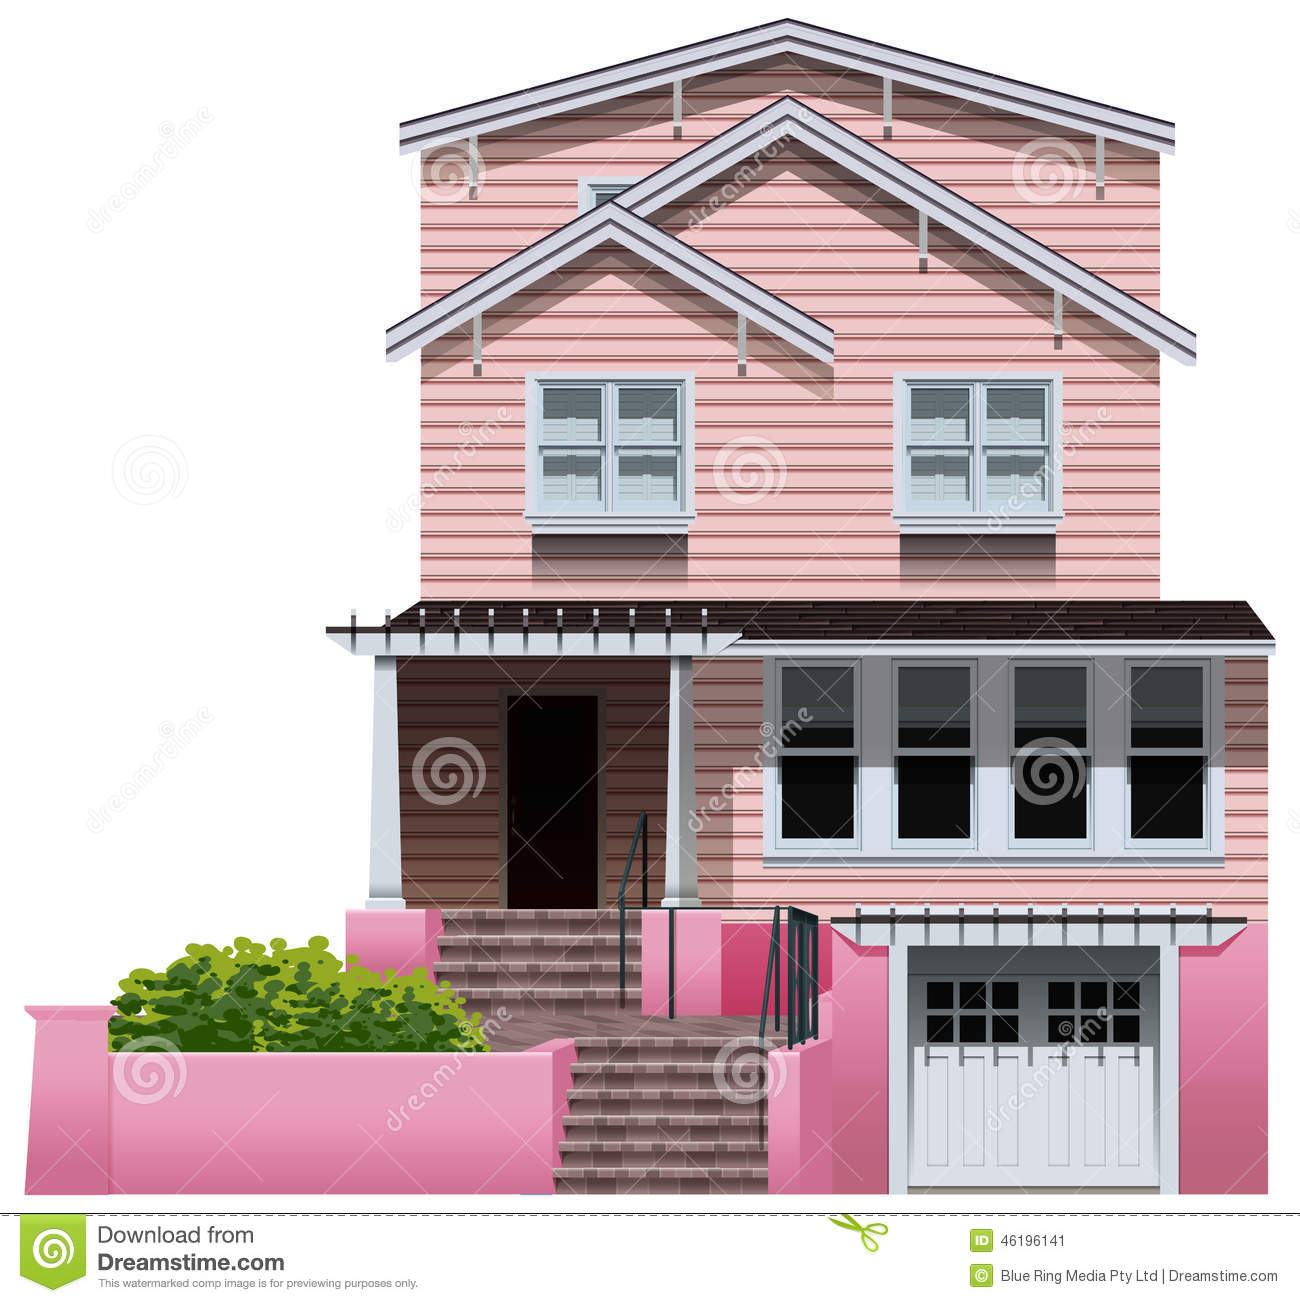 Illustration dune belle maison rose sur un fond blanc